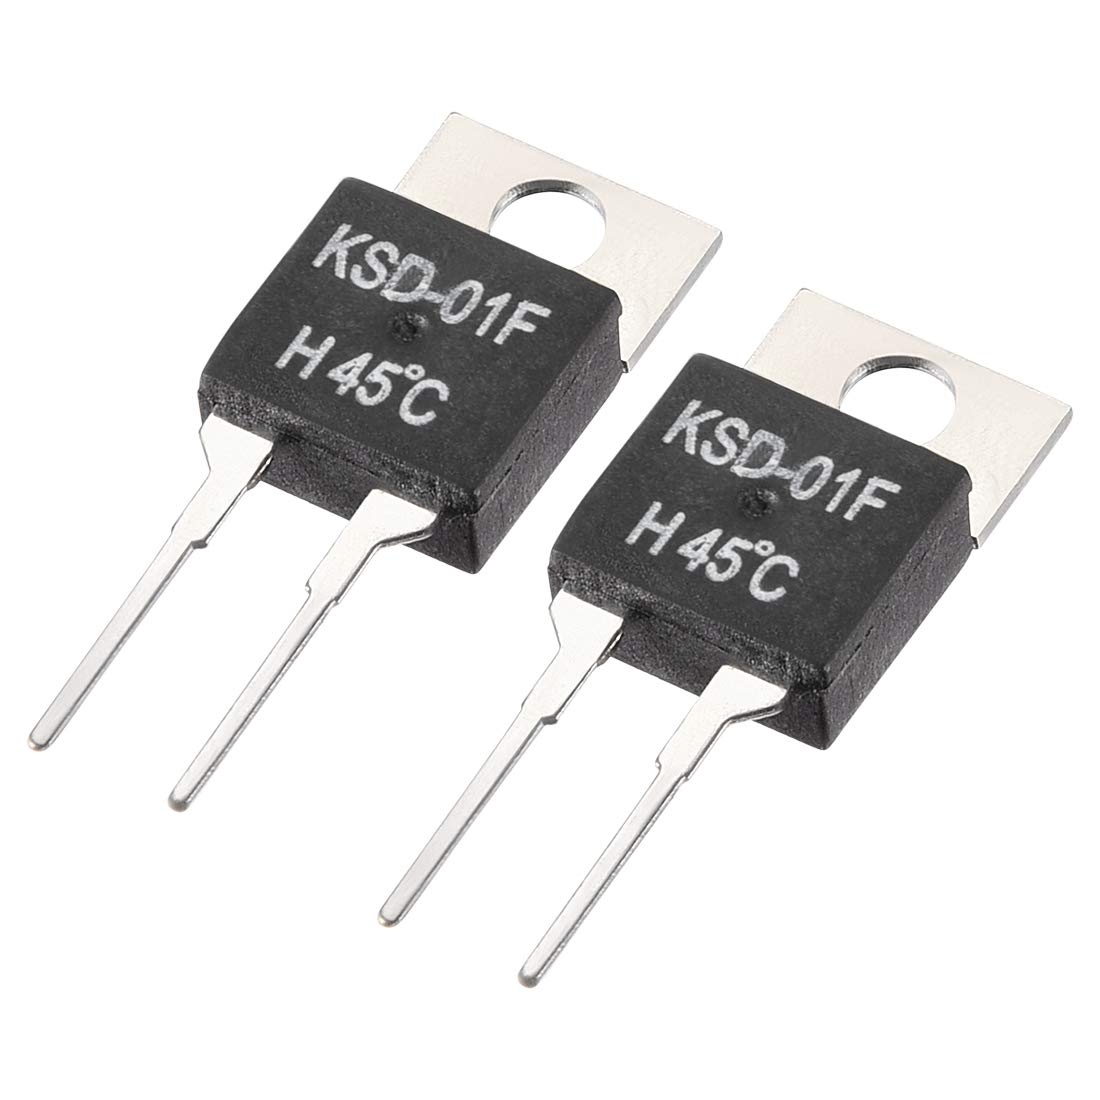 uxcell Normally Open Temperature Switch, KSD-01F Thermal Switch Thermostat Temperature Controller 45℃ N.O 2pcs